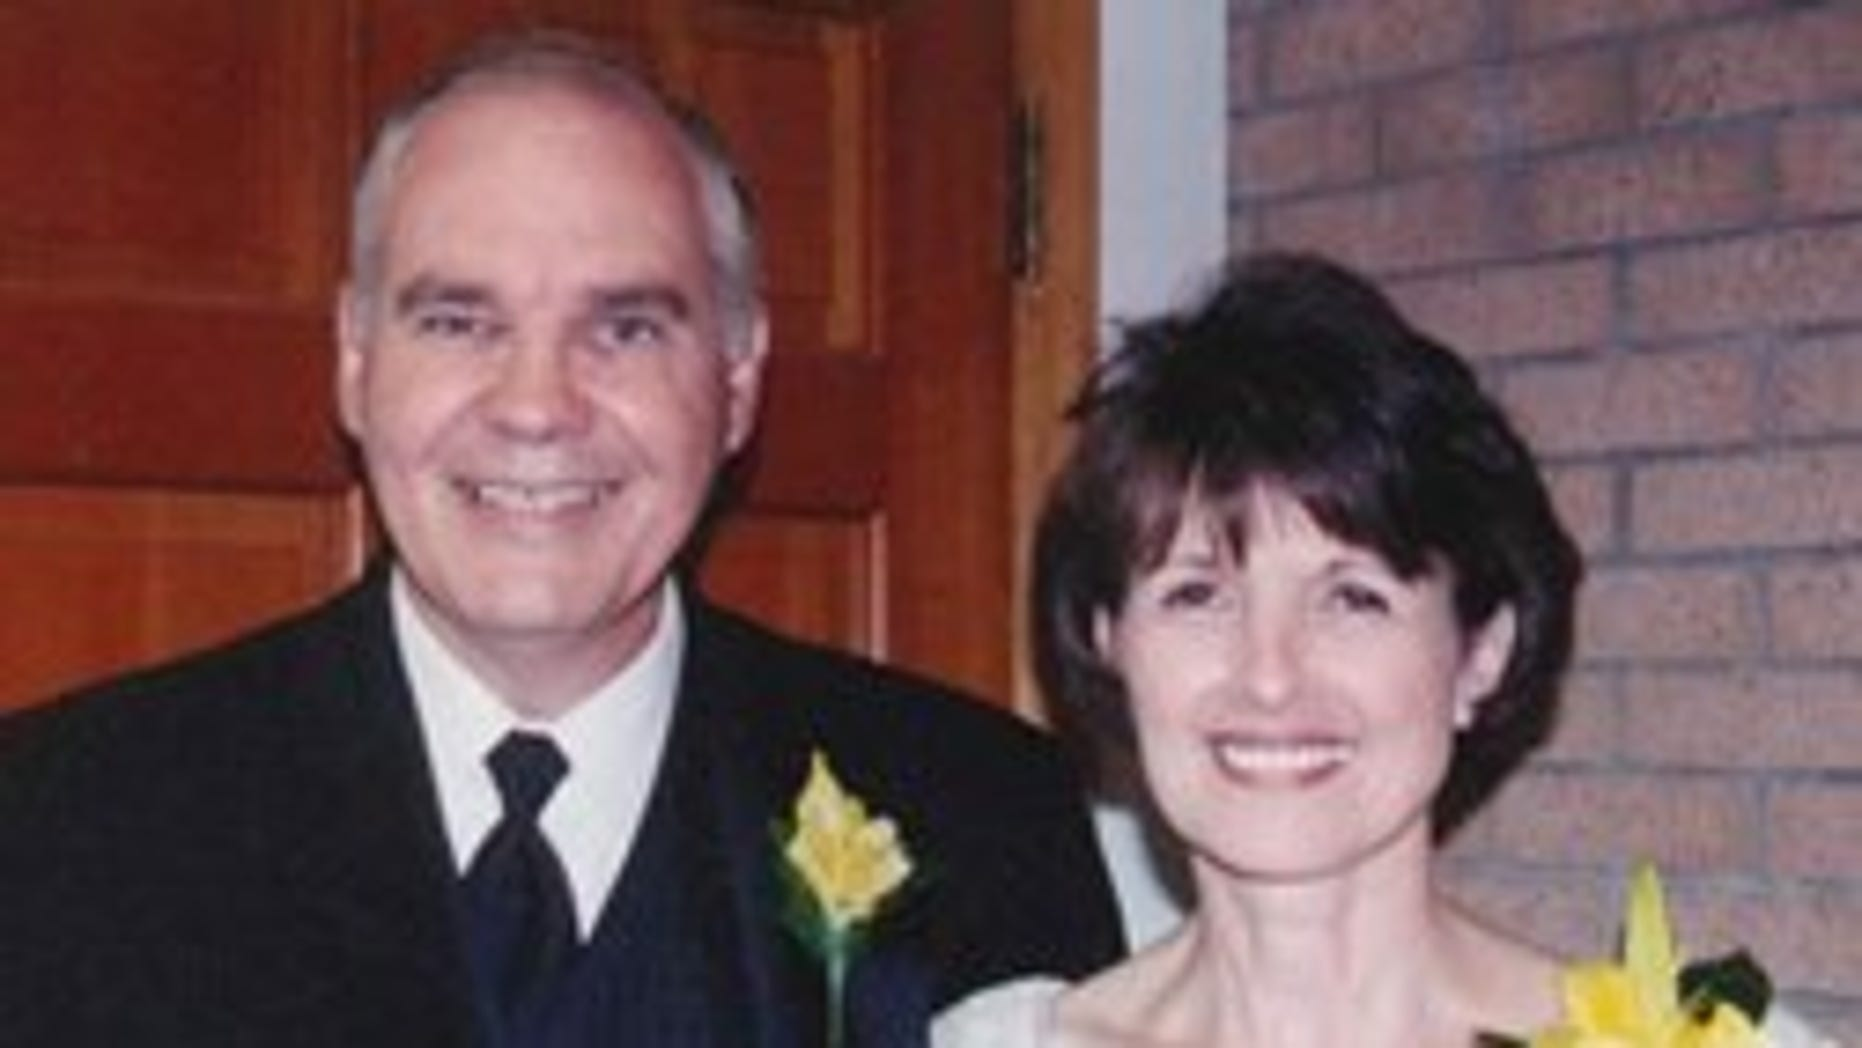 Johnny and Teresa Hatley had been married for 31 years.